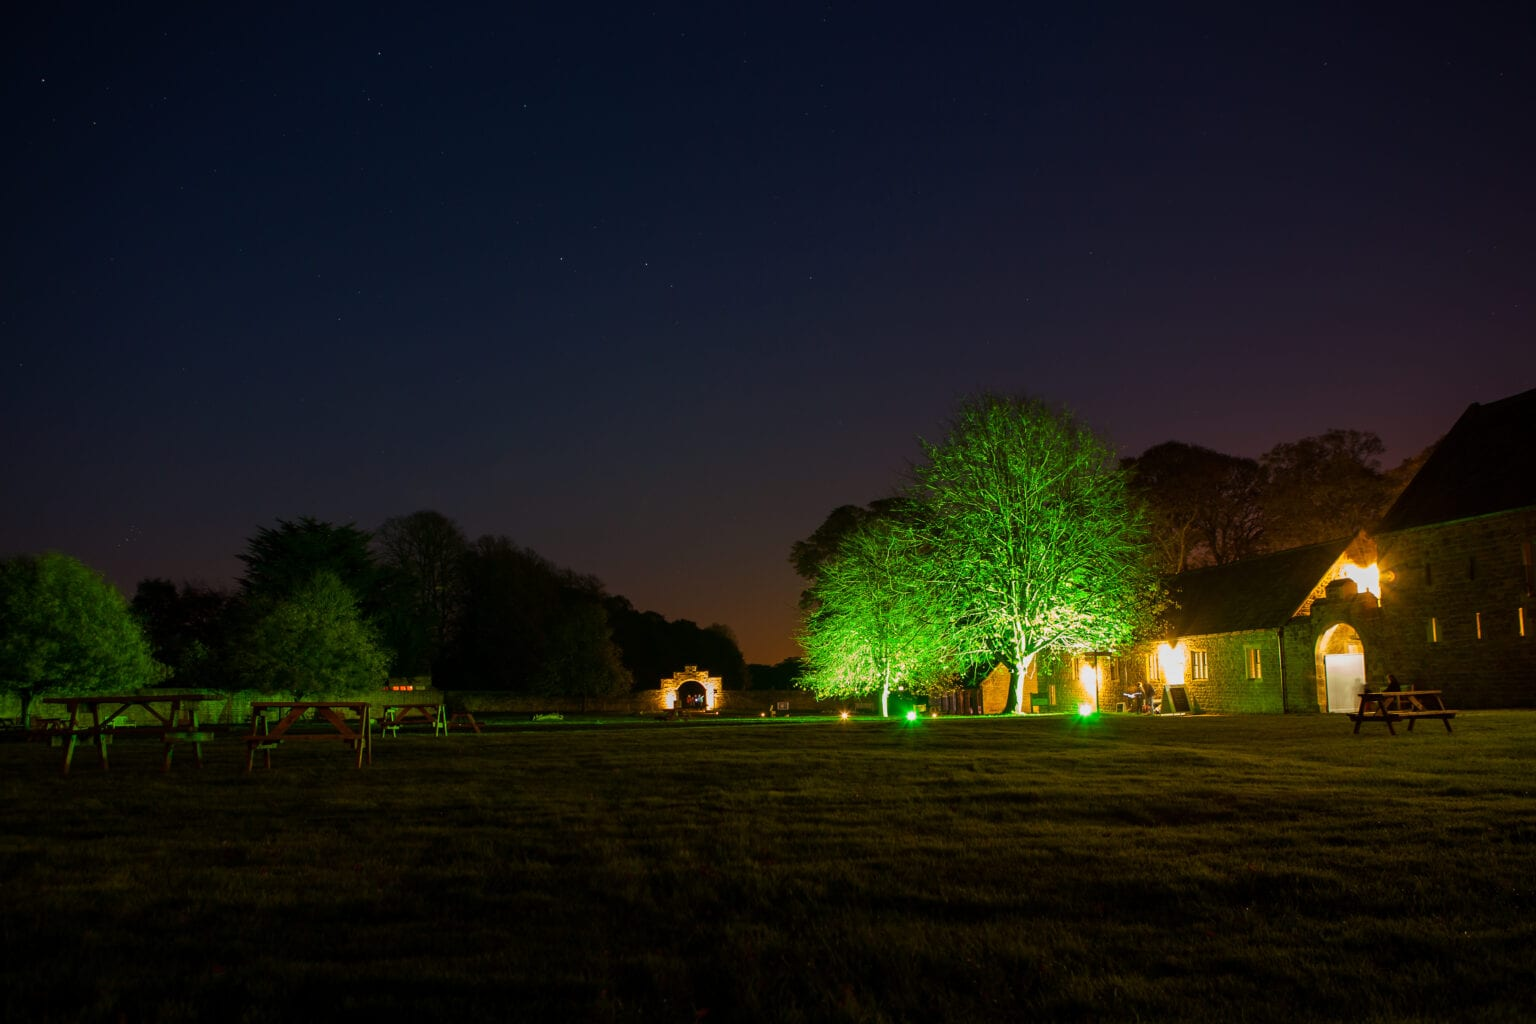 Lighting effects and pa speaker sound system effects for Hardwick Hall Chesterfield